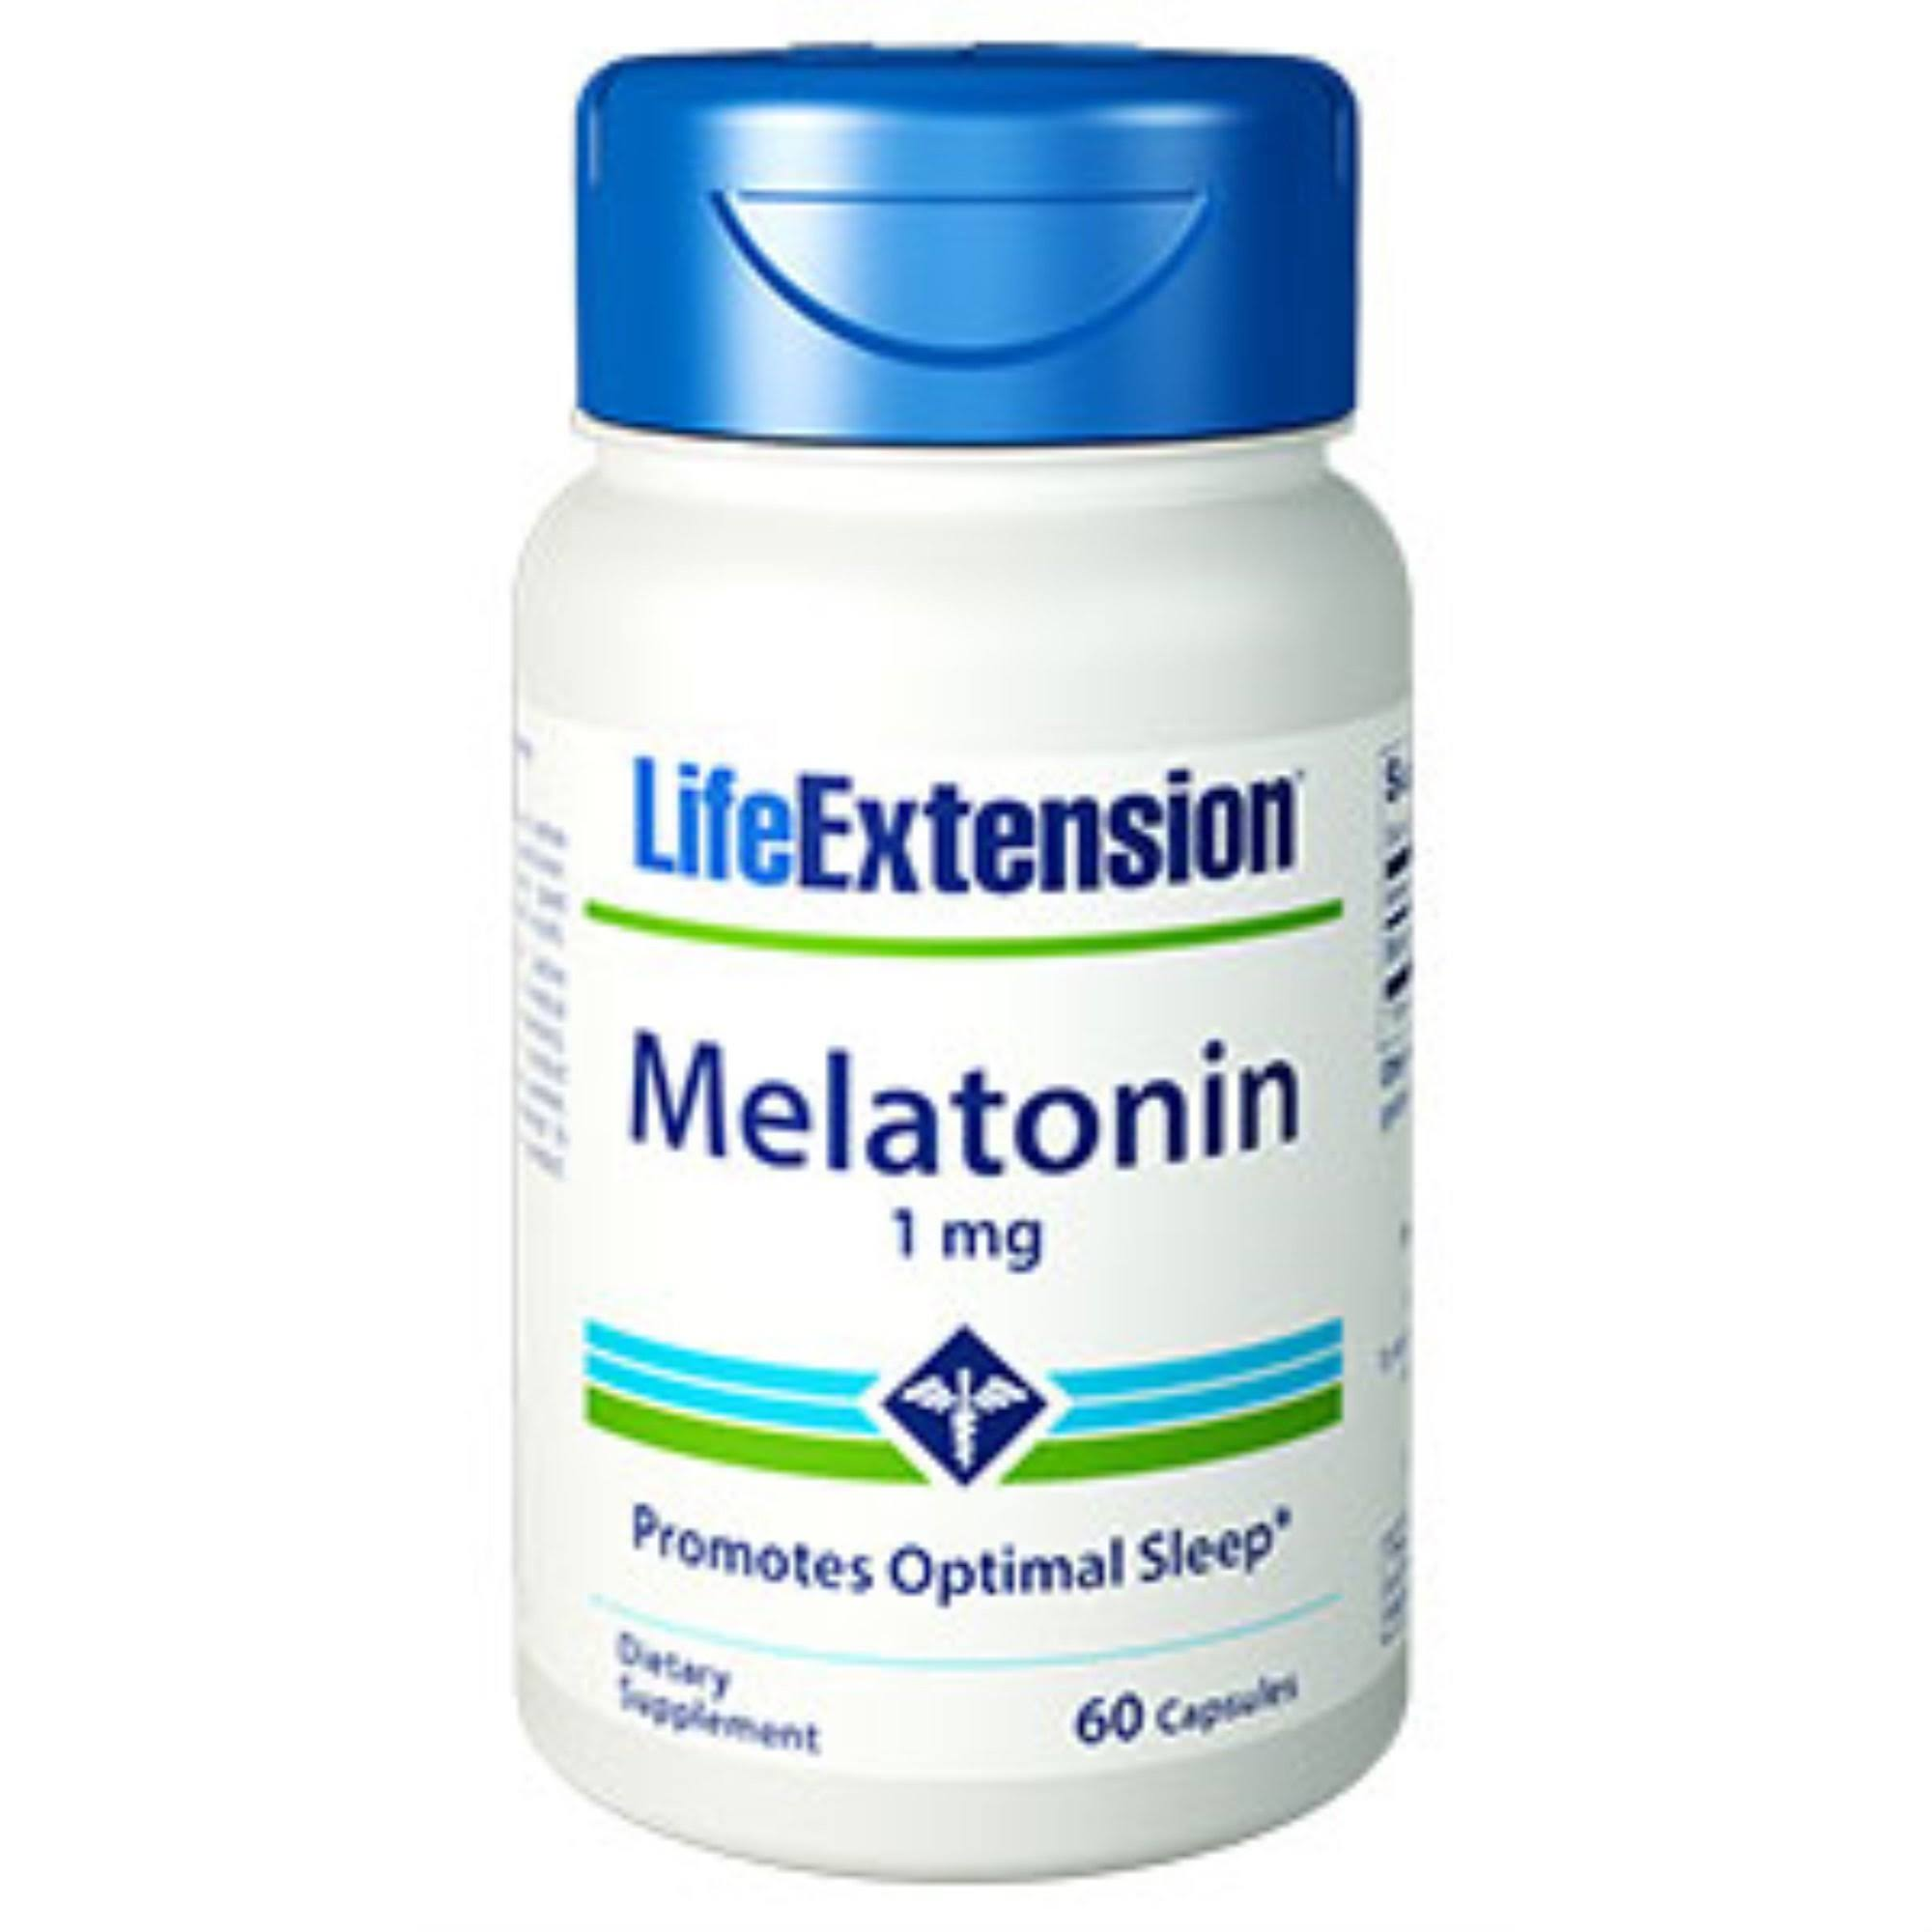 Life Extension Melatonin Supplement - 1mg, 60 capsules